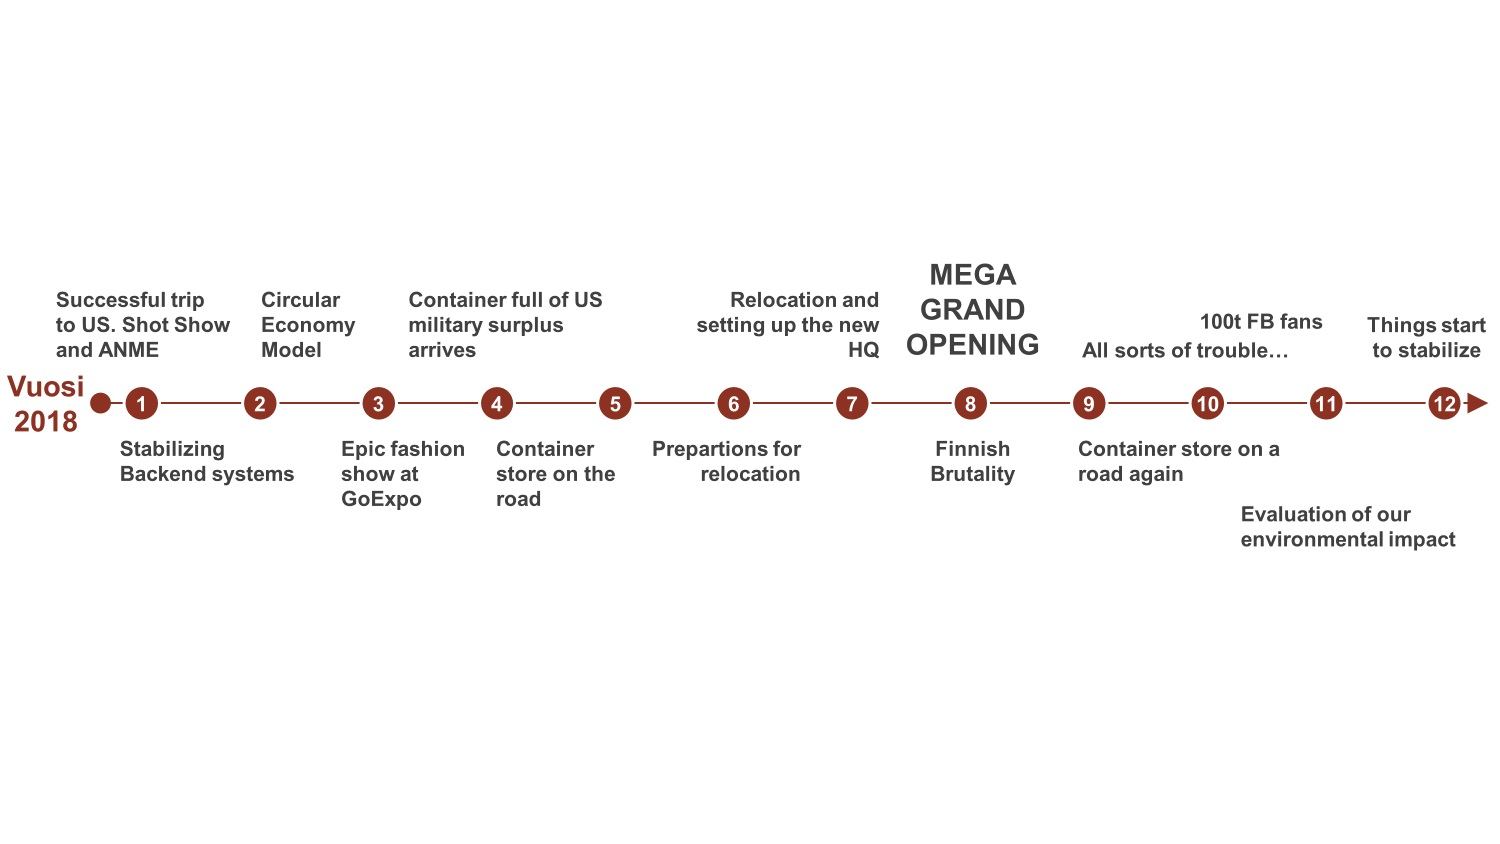 TImeline of 2018 with events marked with numbers from 1 to 12 in red circles. The events are described in the text.